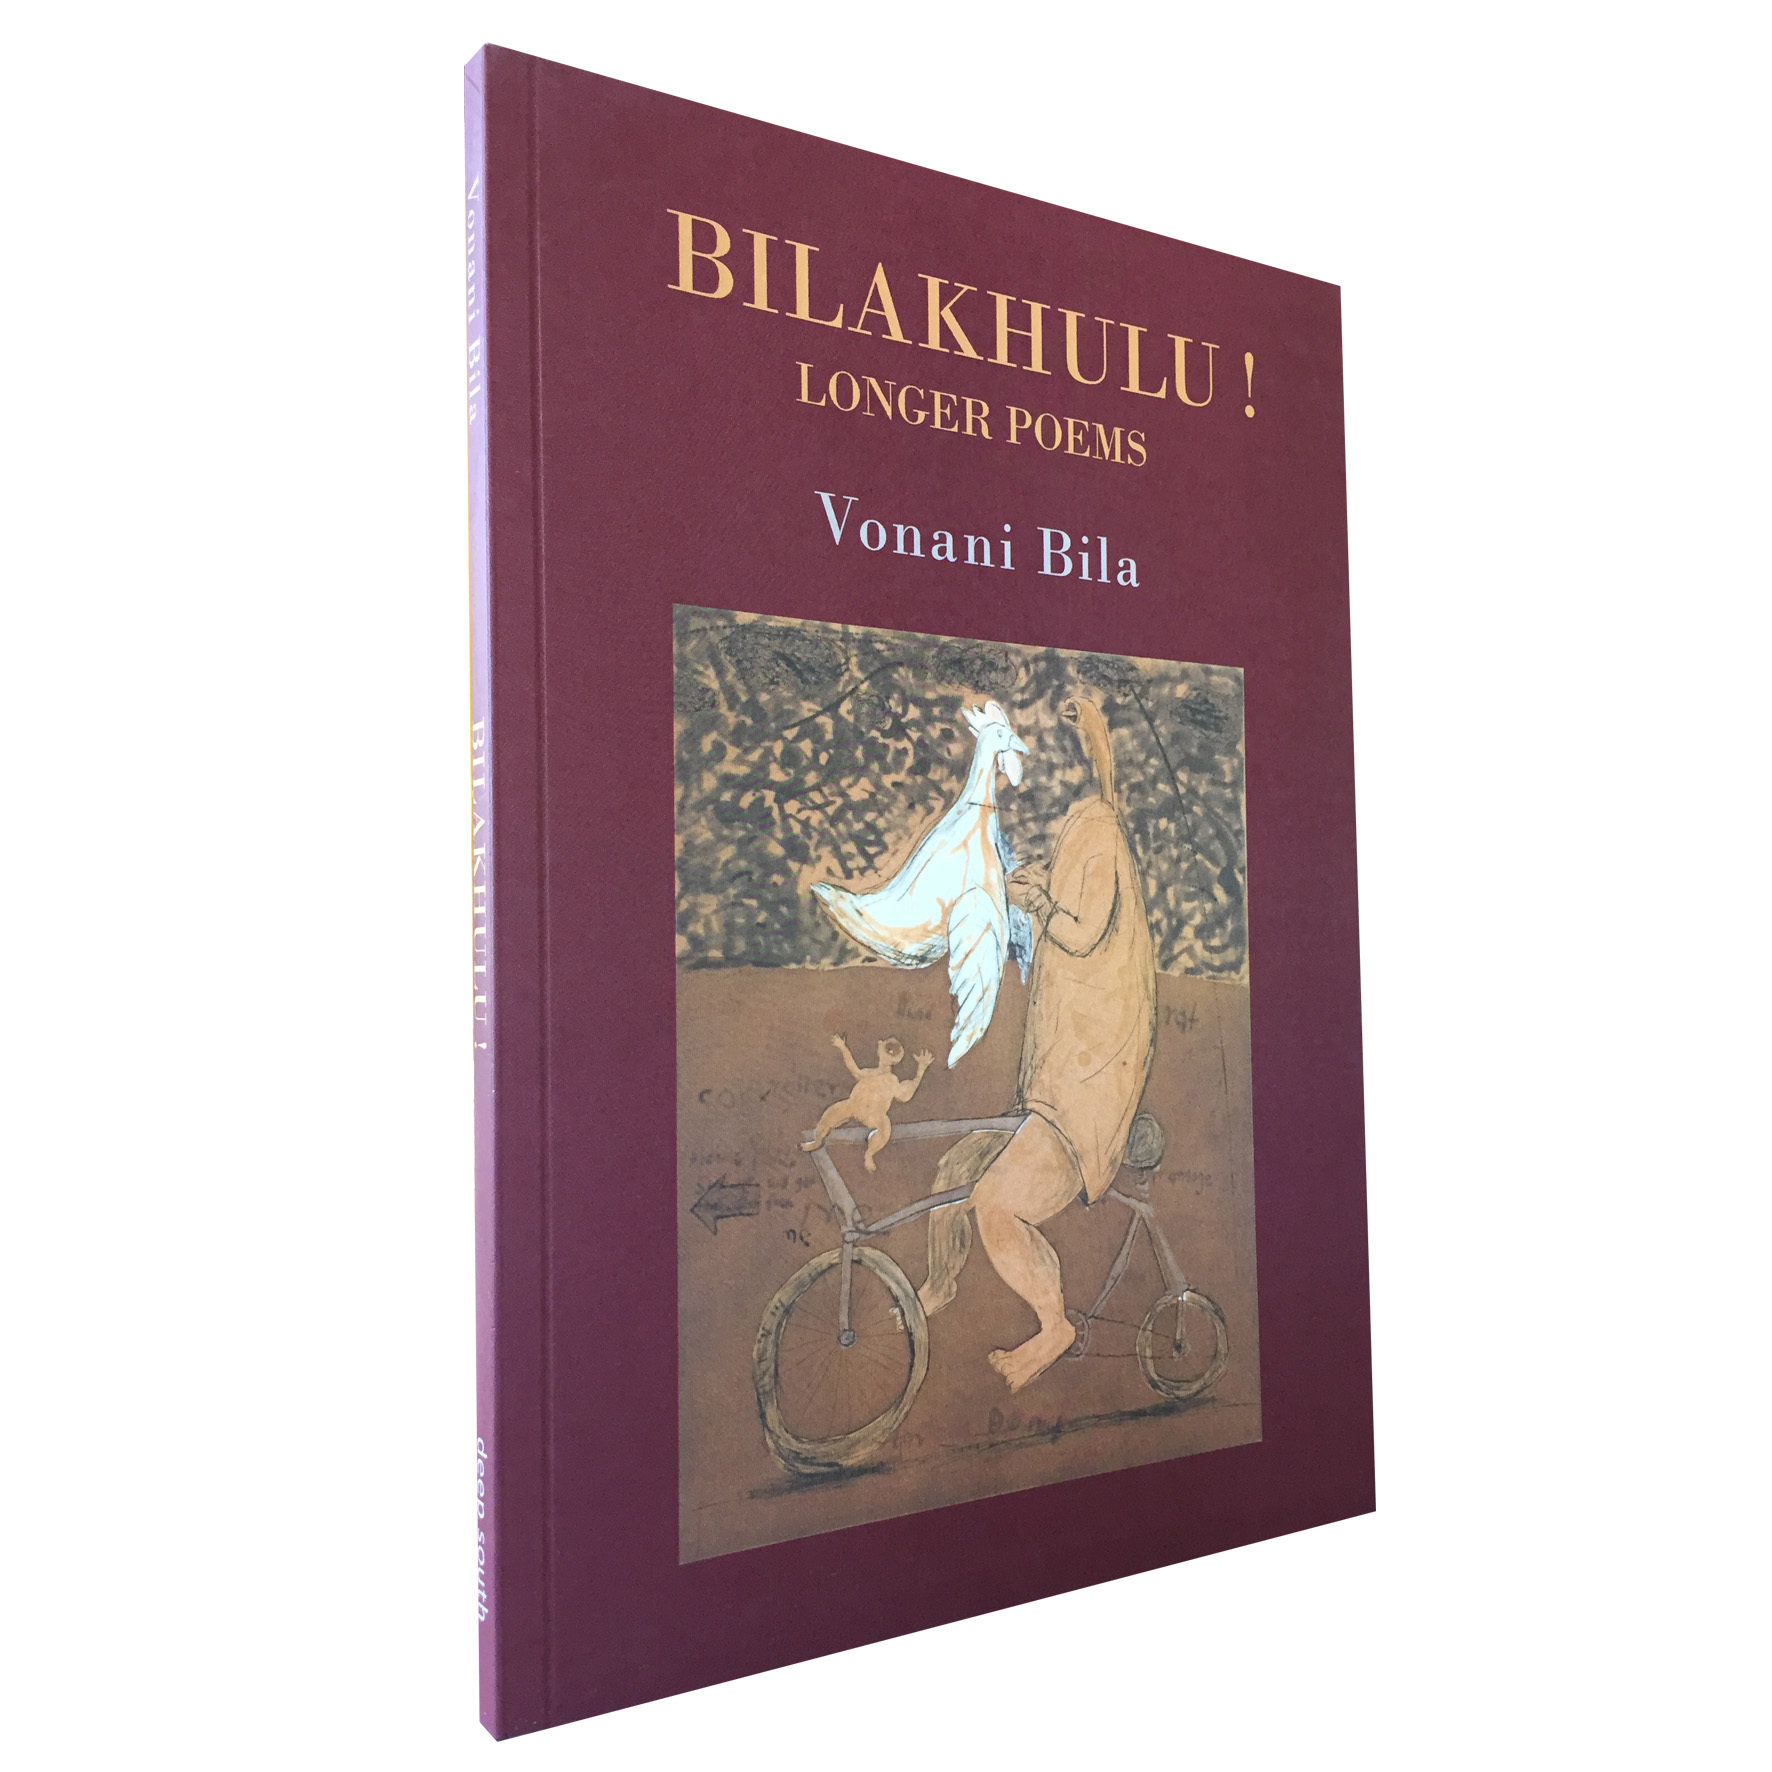 Bilakhulu! Longer Poems by Vonani Bila (Deep South Publishing) DS01